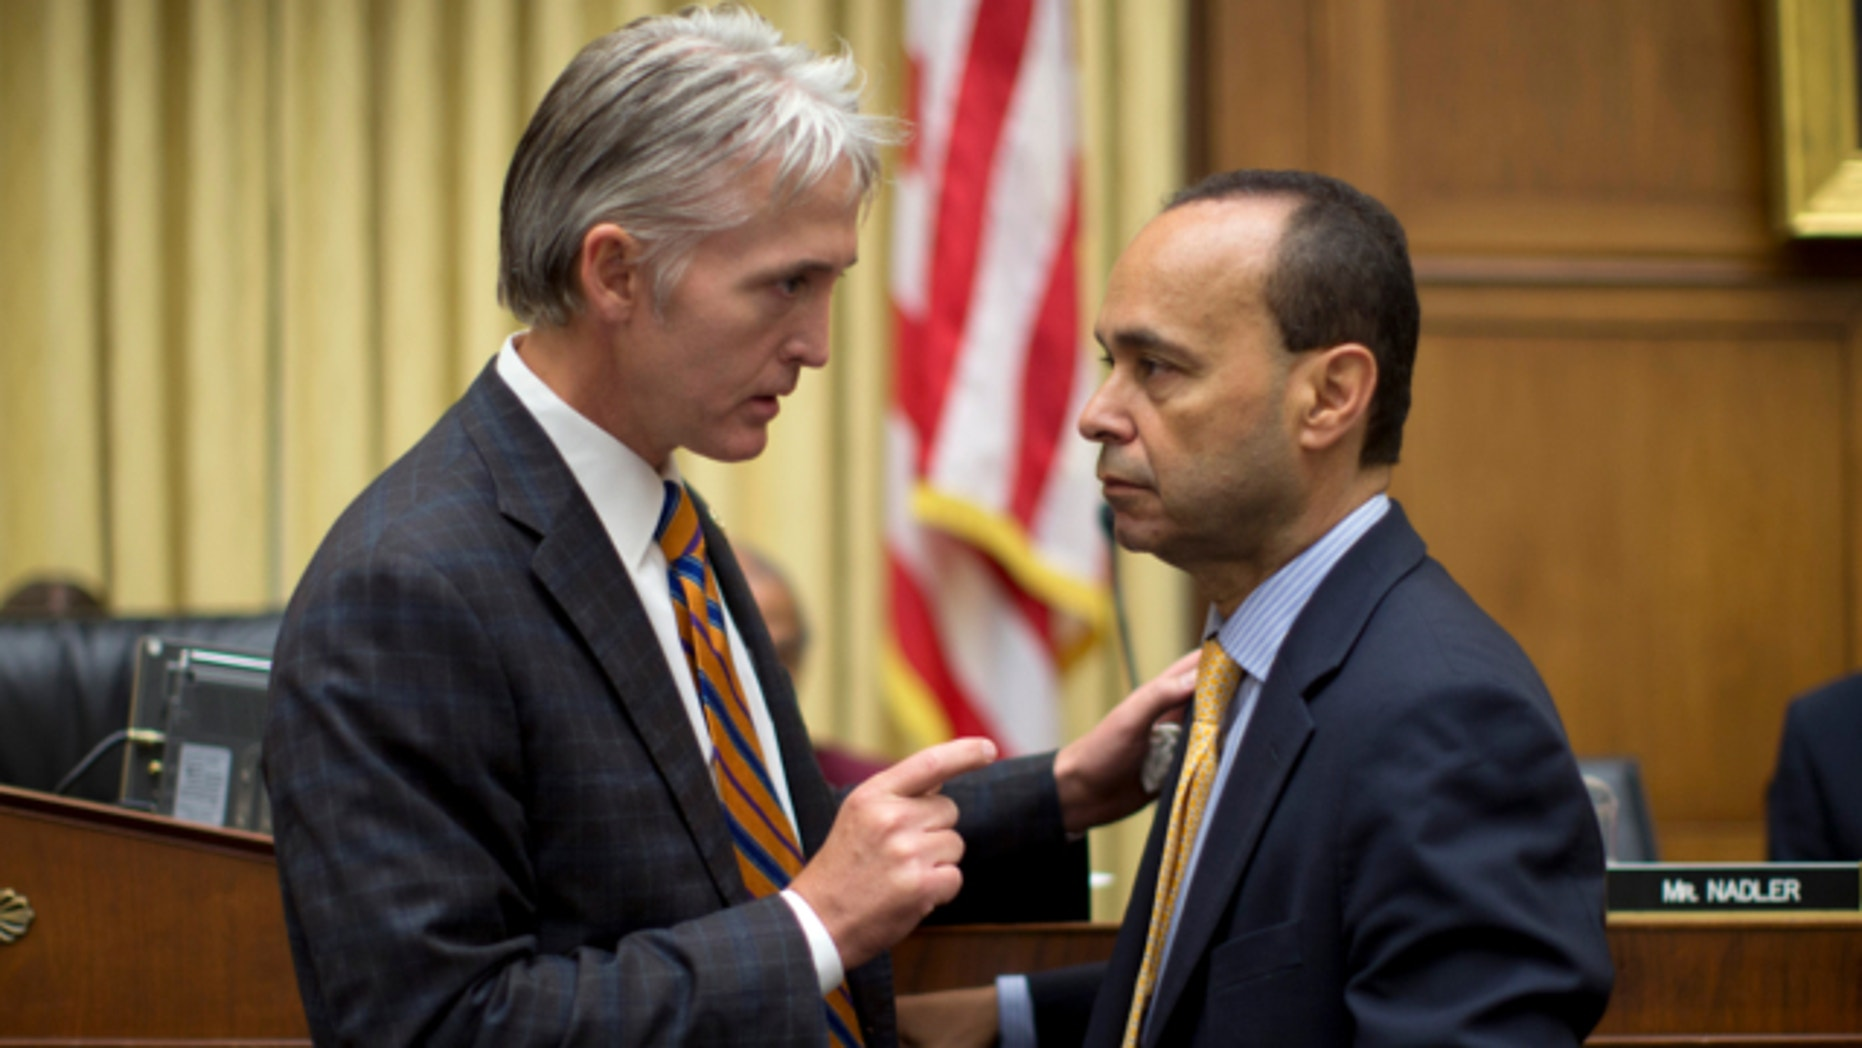 June 18, 2013: House Judiciary Committee member Rep. Trey Gowdy, R-S.C., sponsor of the Strengthen and Fortify Enforcement Act, left, talks with Rep. Luis Gutierrez, D-Ill., on Capitol Hill in Washington.